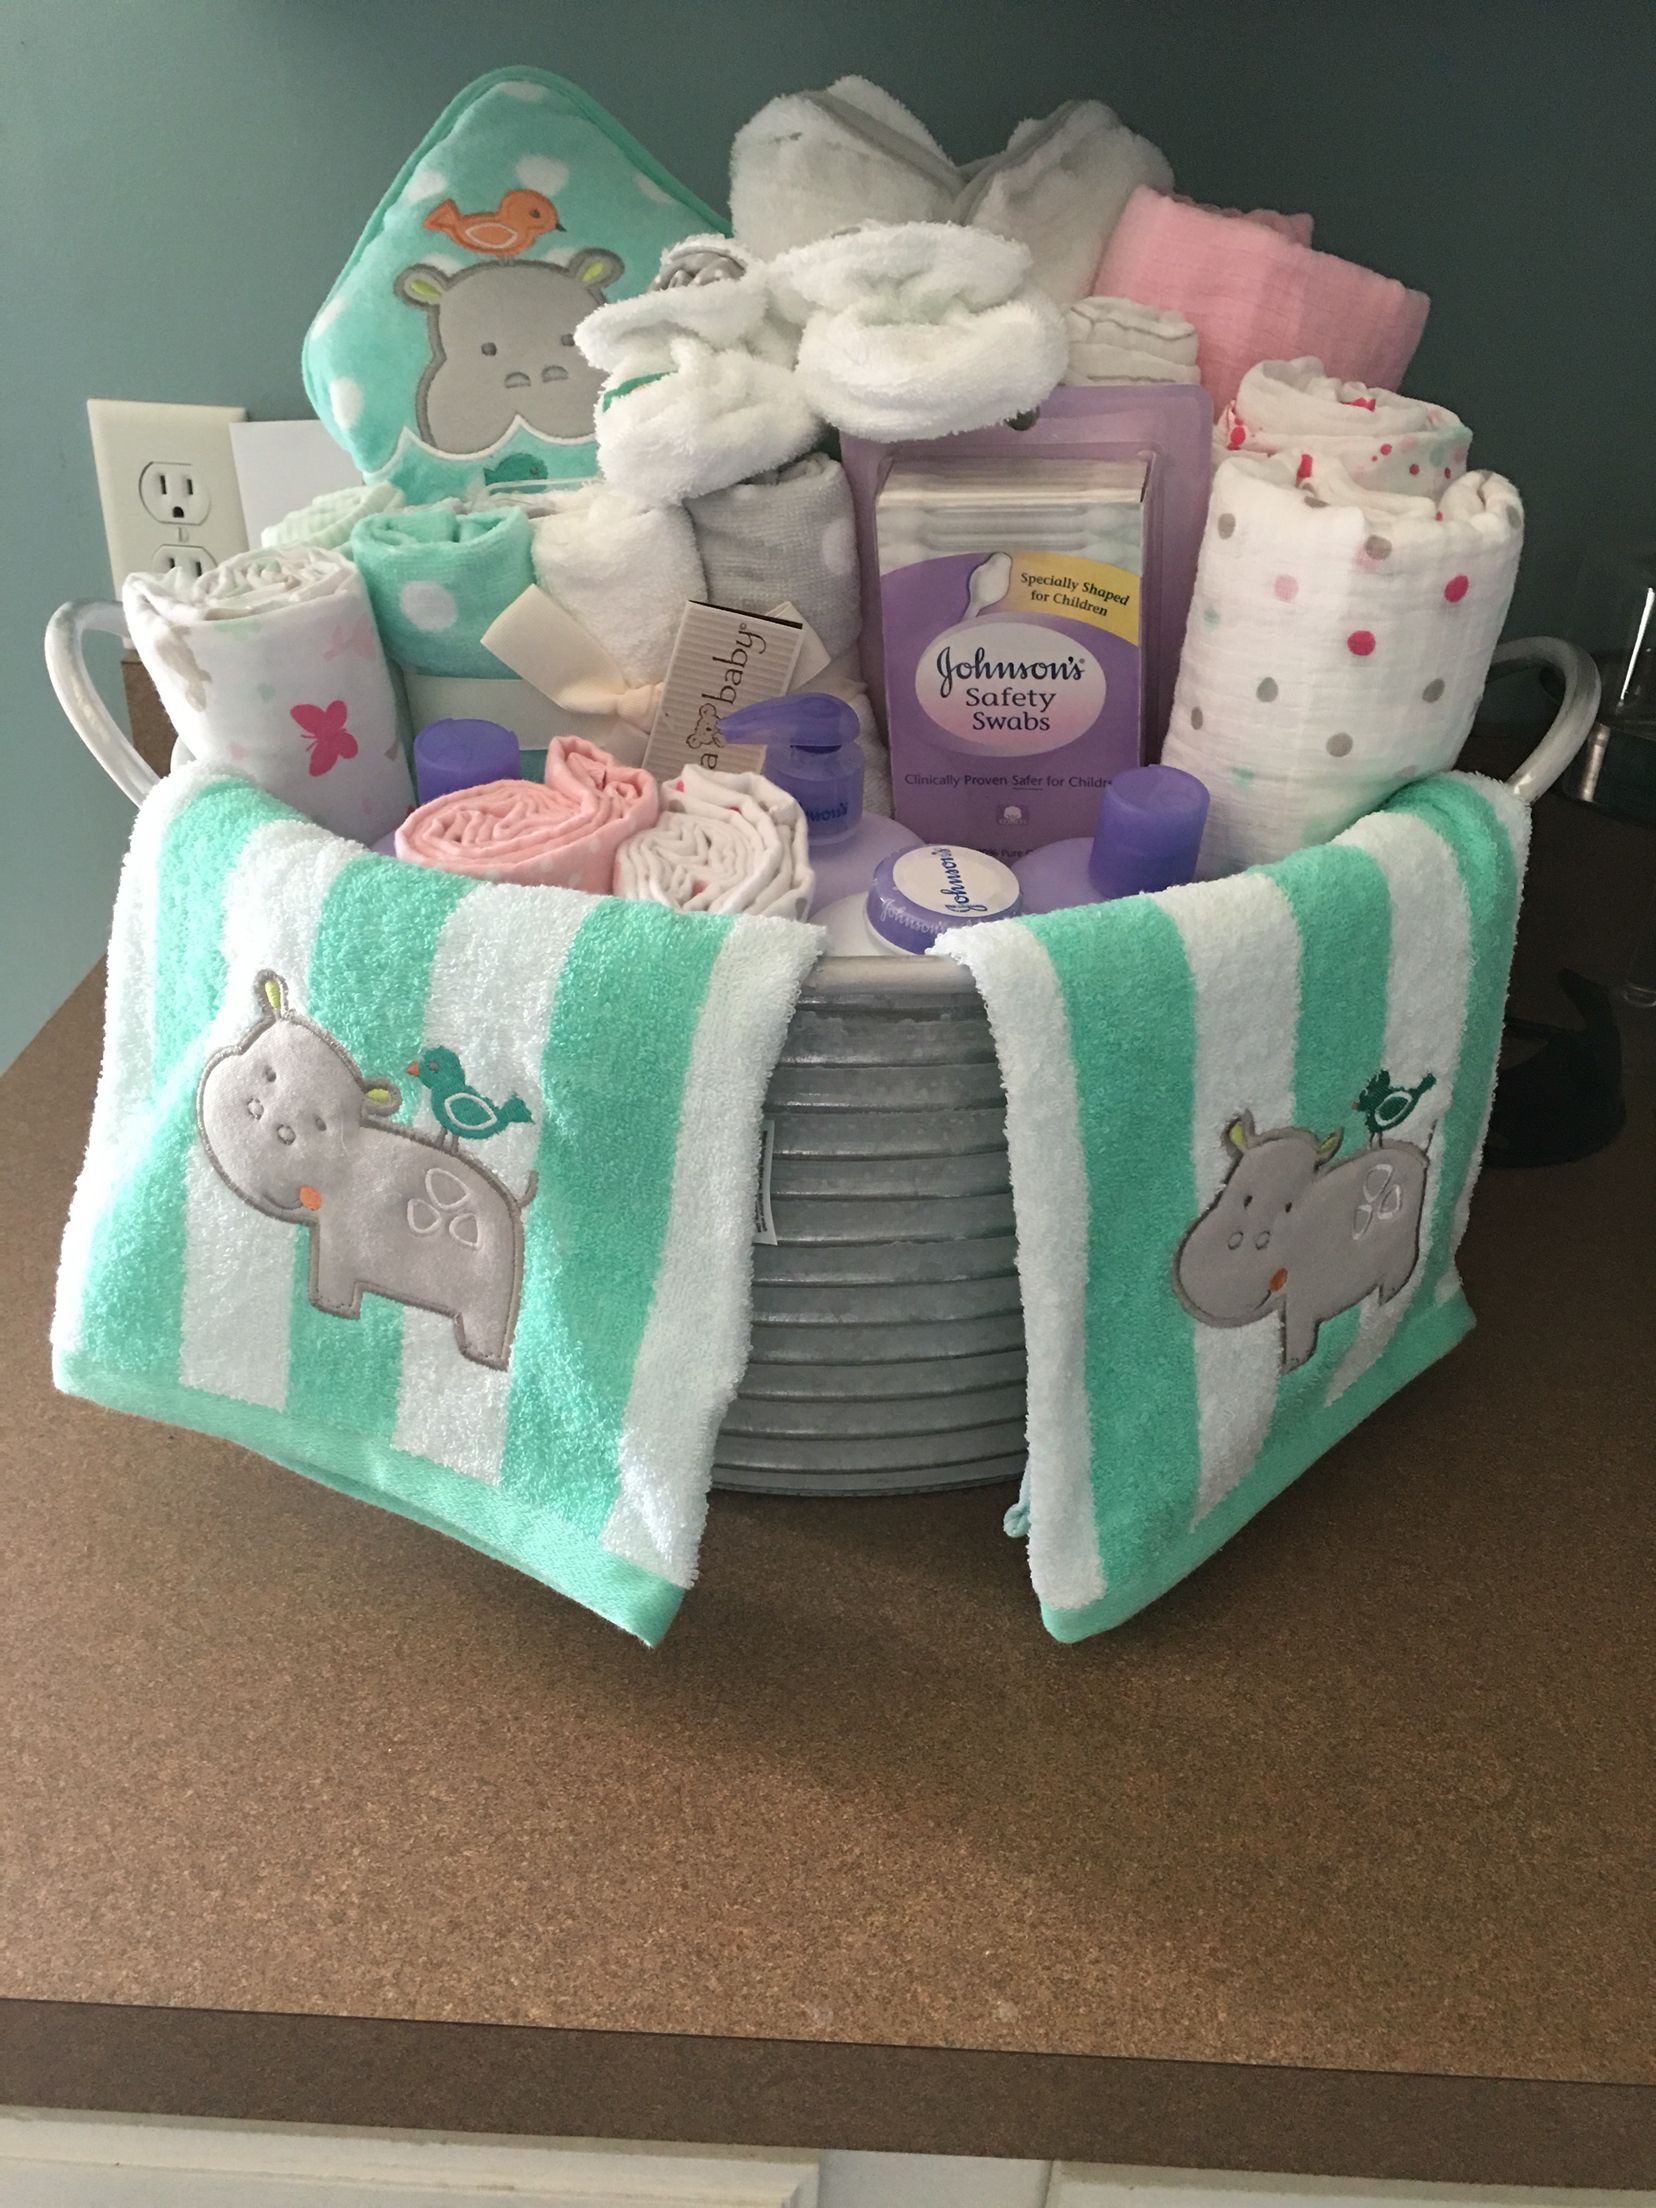 Best ideas about Gift Ideas For Baby Shower . Save or Pin Baby shower present I made Galvanized bucket with baby Now.